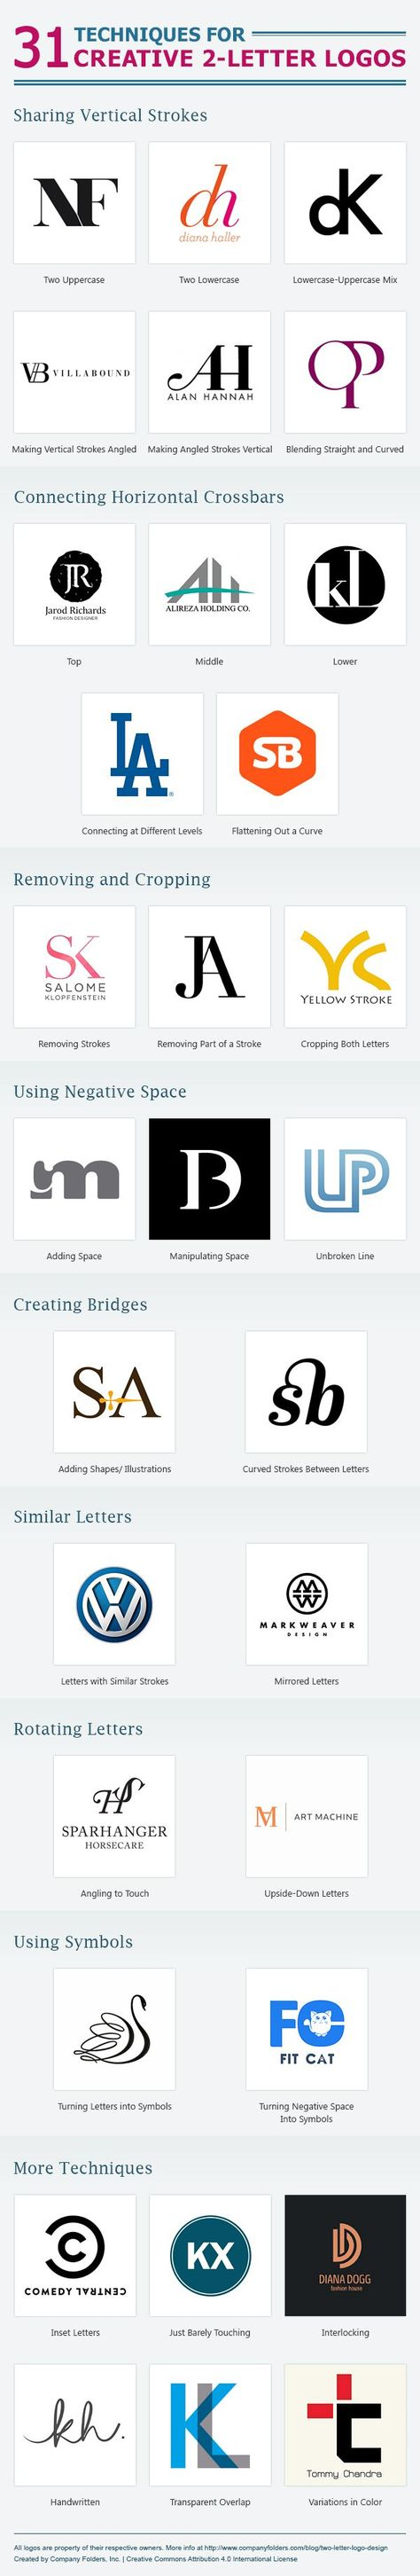 30 Best Photoshop Logo Design Tutorials  Designscrazed